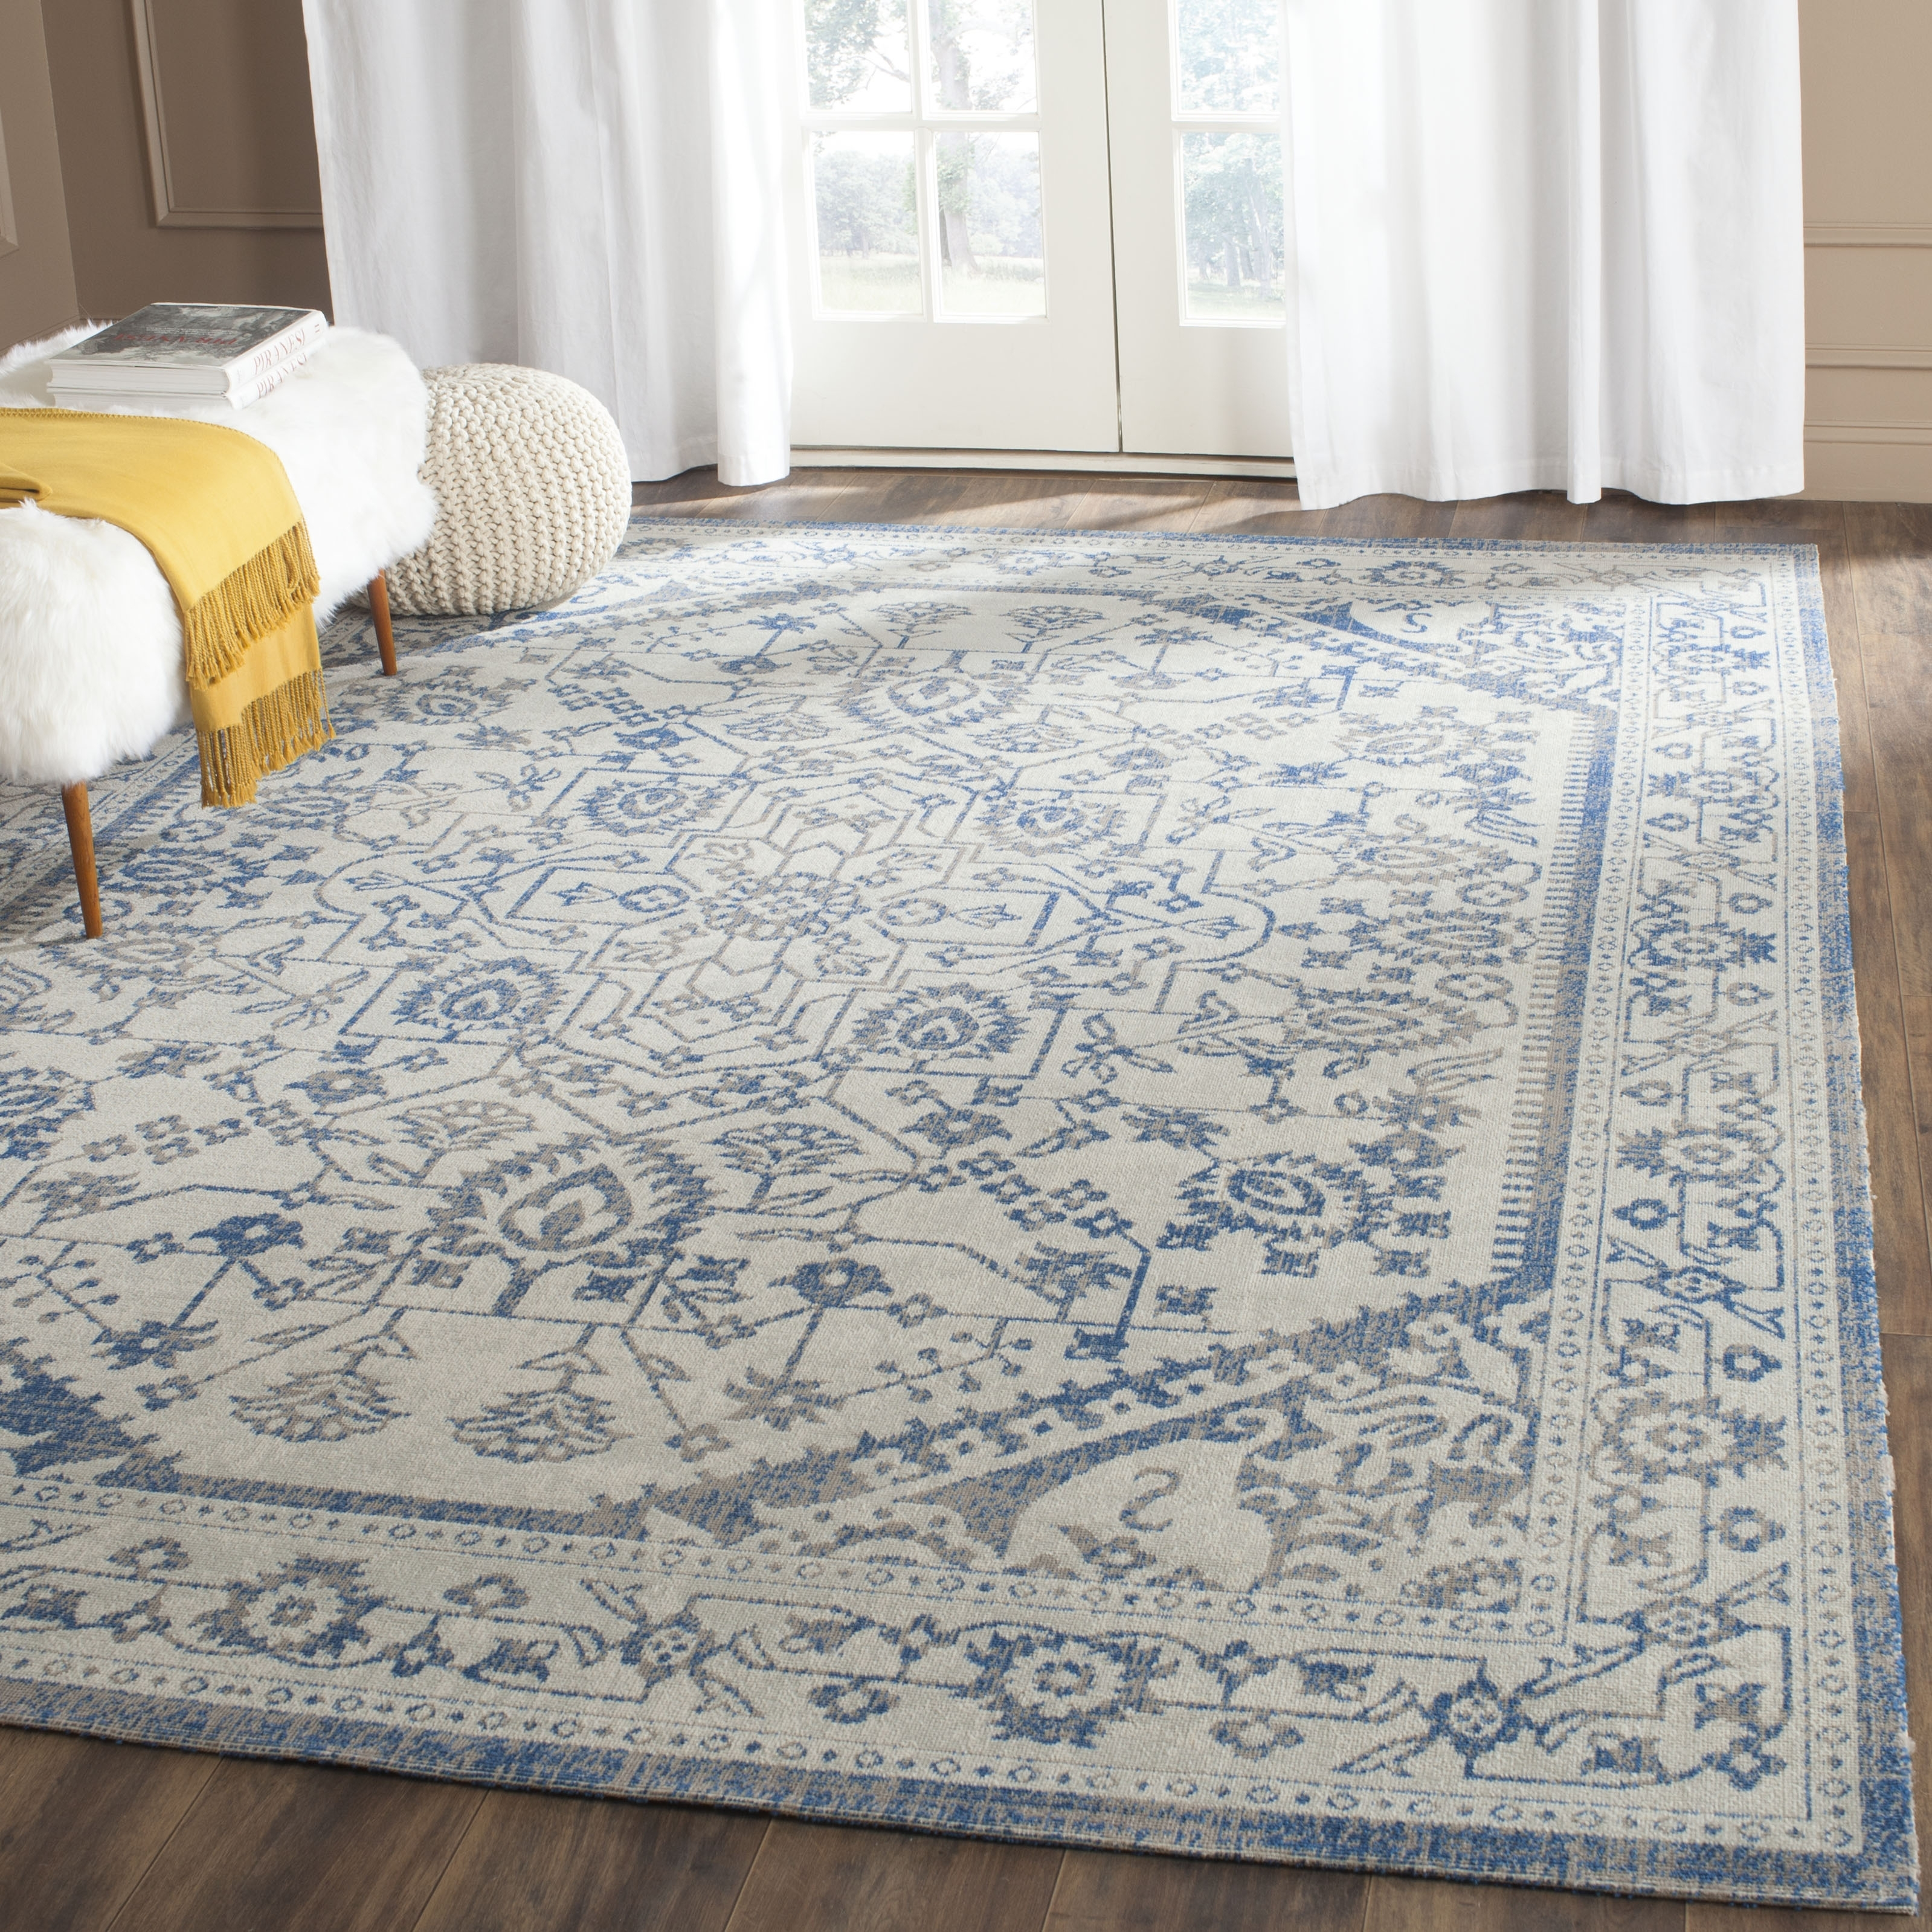 Blue Wool Area Rugs Roselawnlutheran Throughout 10×14 Wool Area Rugs (#8 of 15)